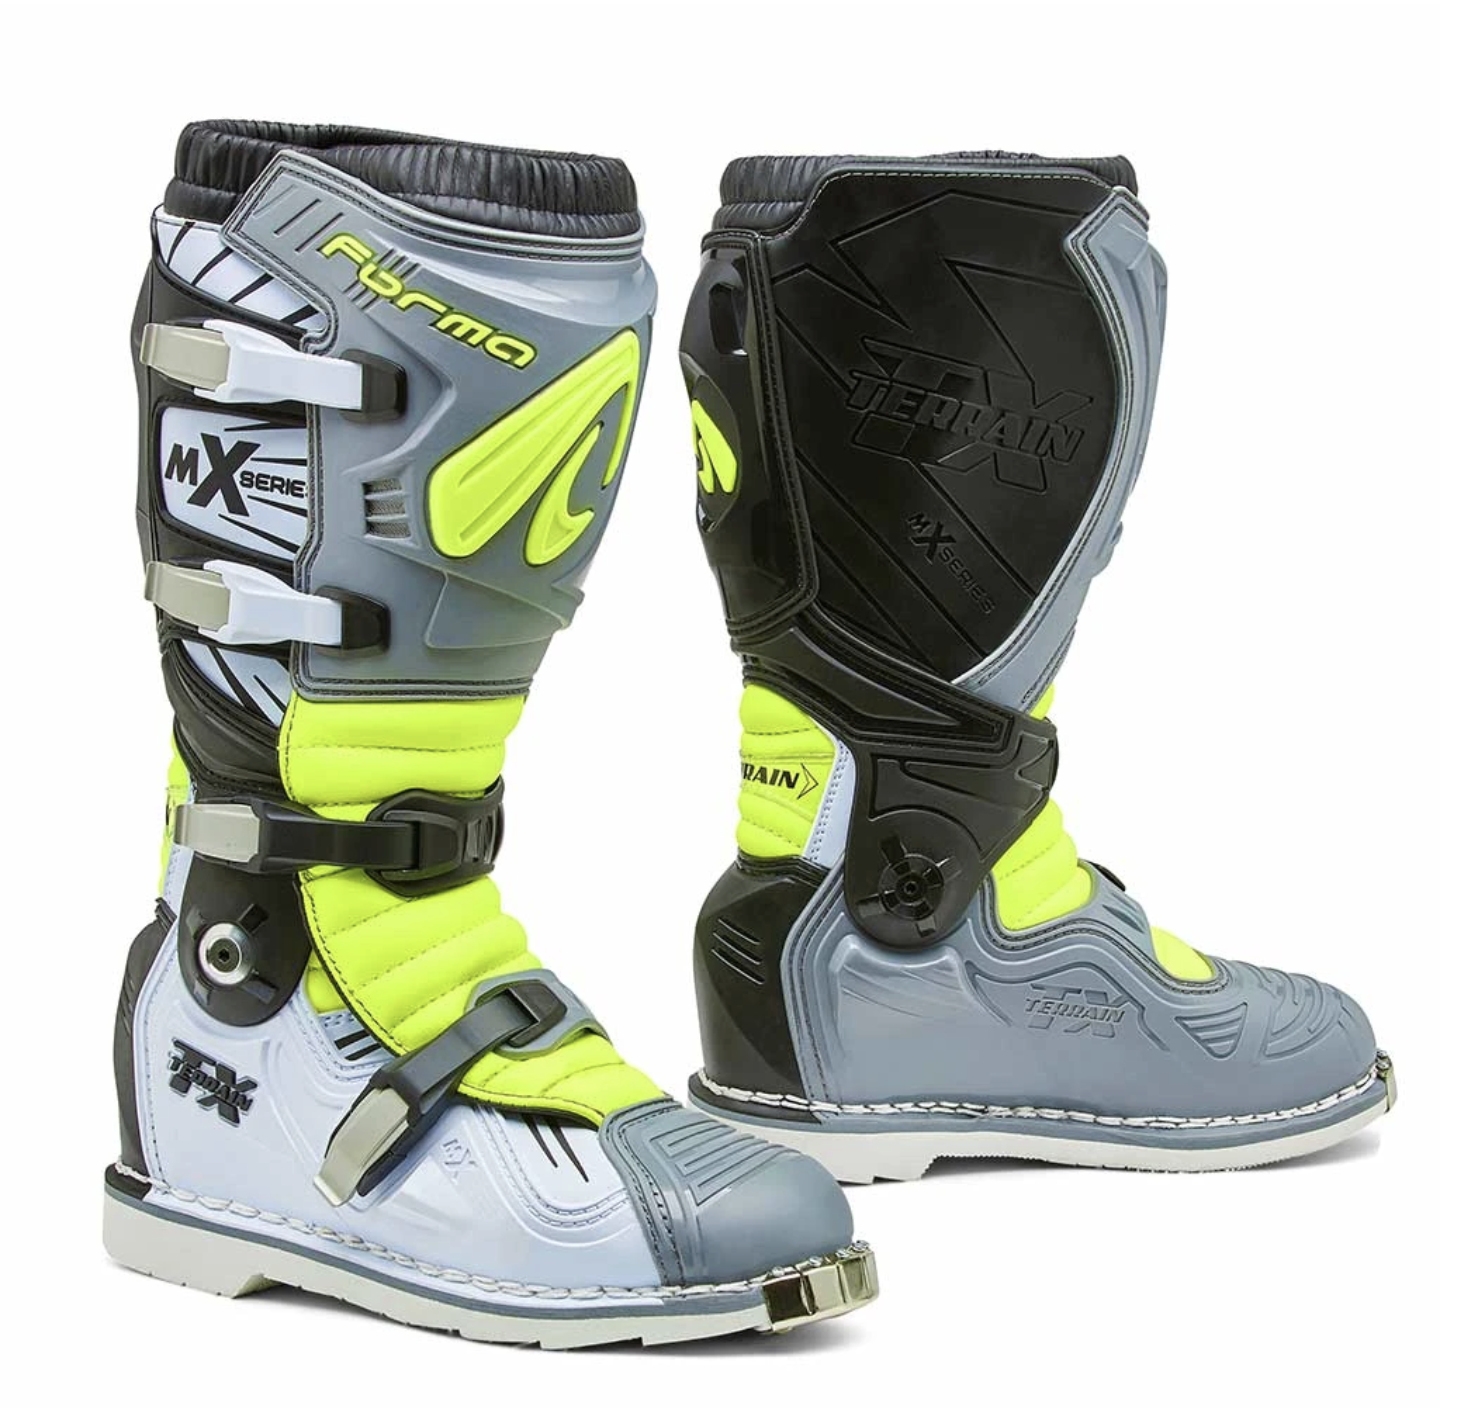 Forma motocross riding boots